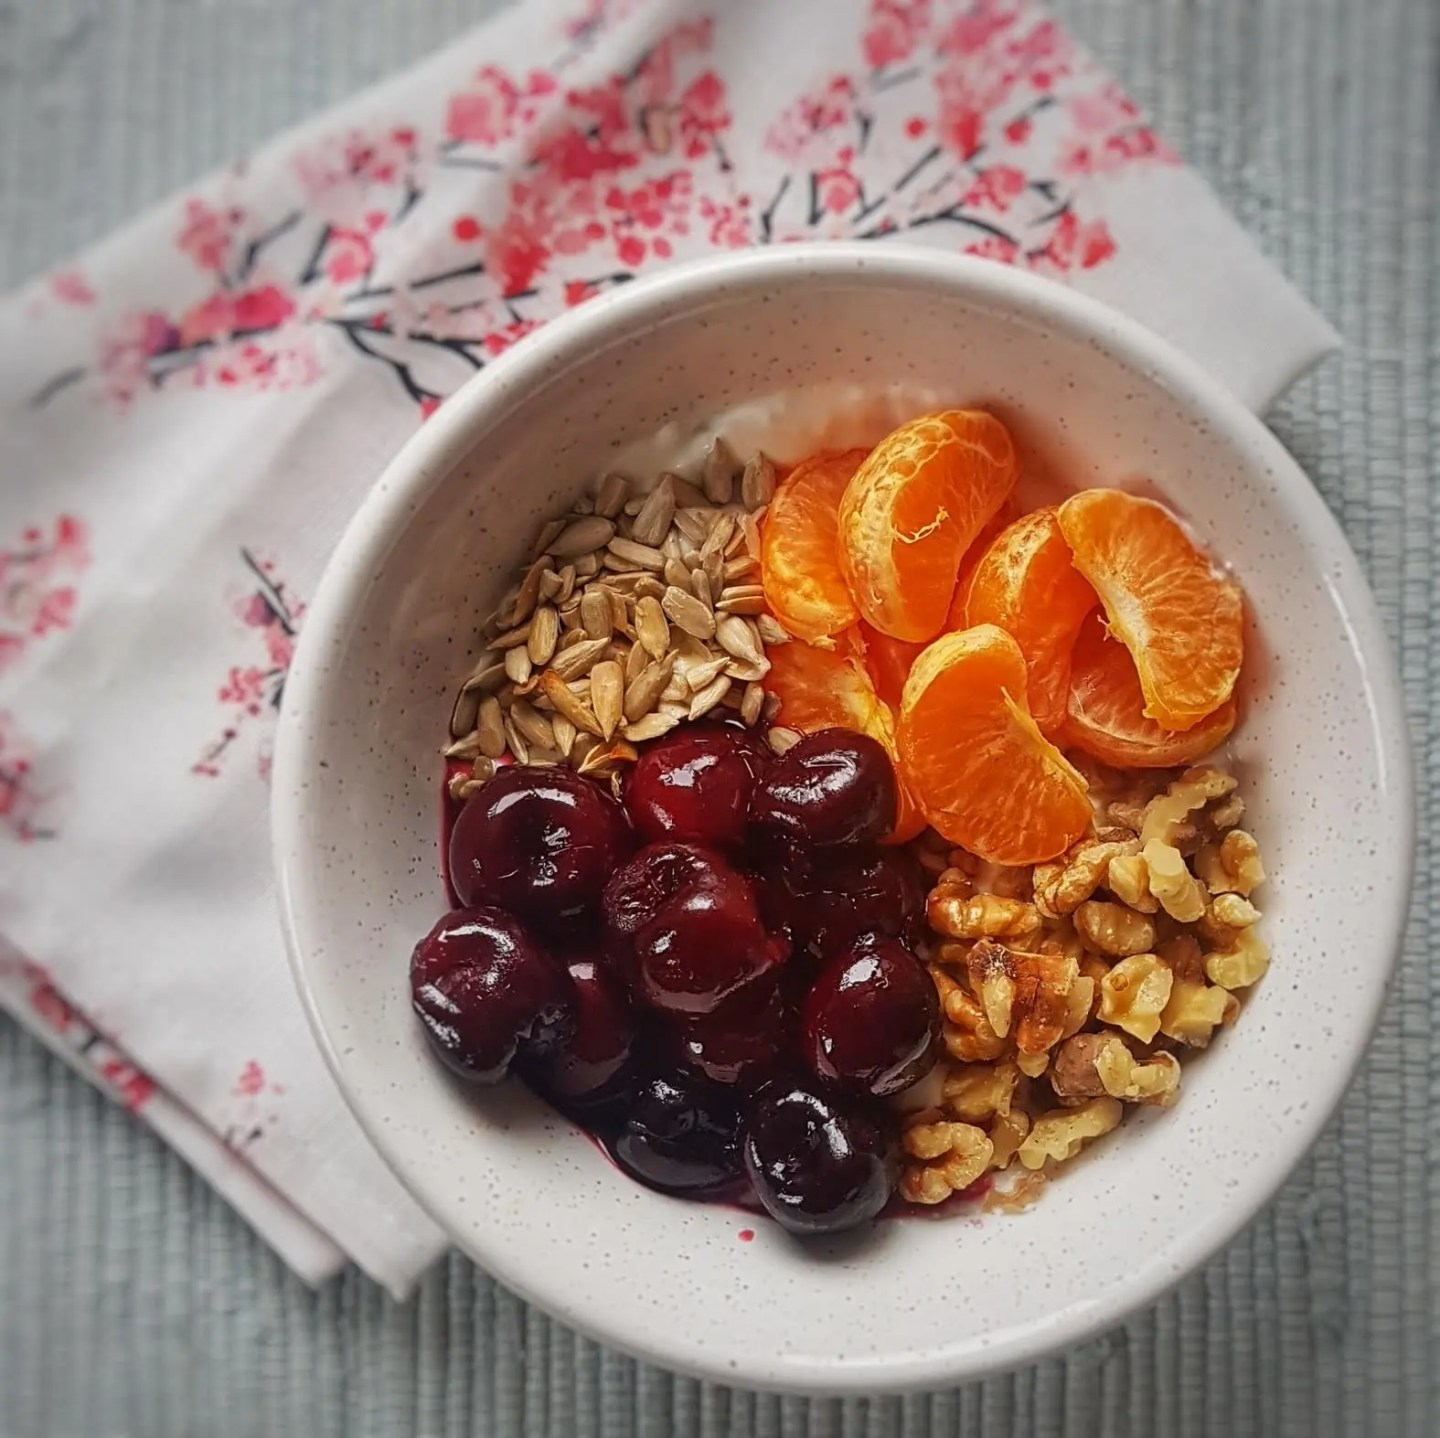 high protein oatmeal with cherries and clementines